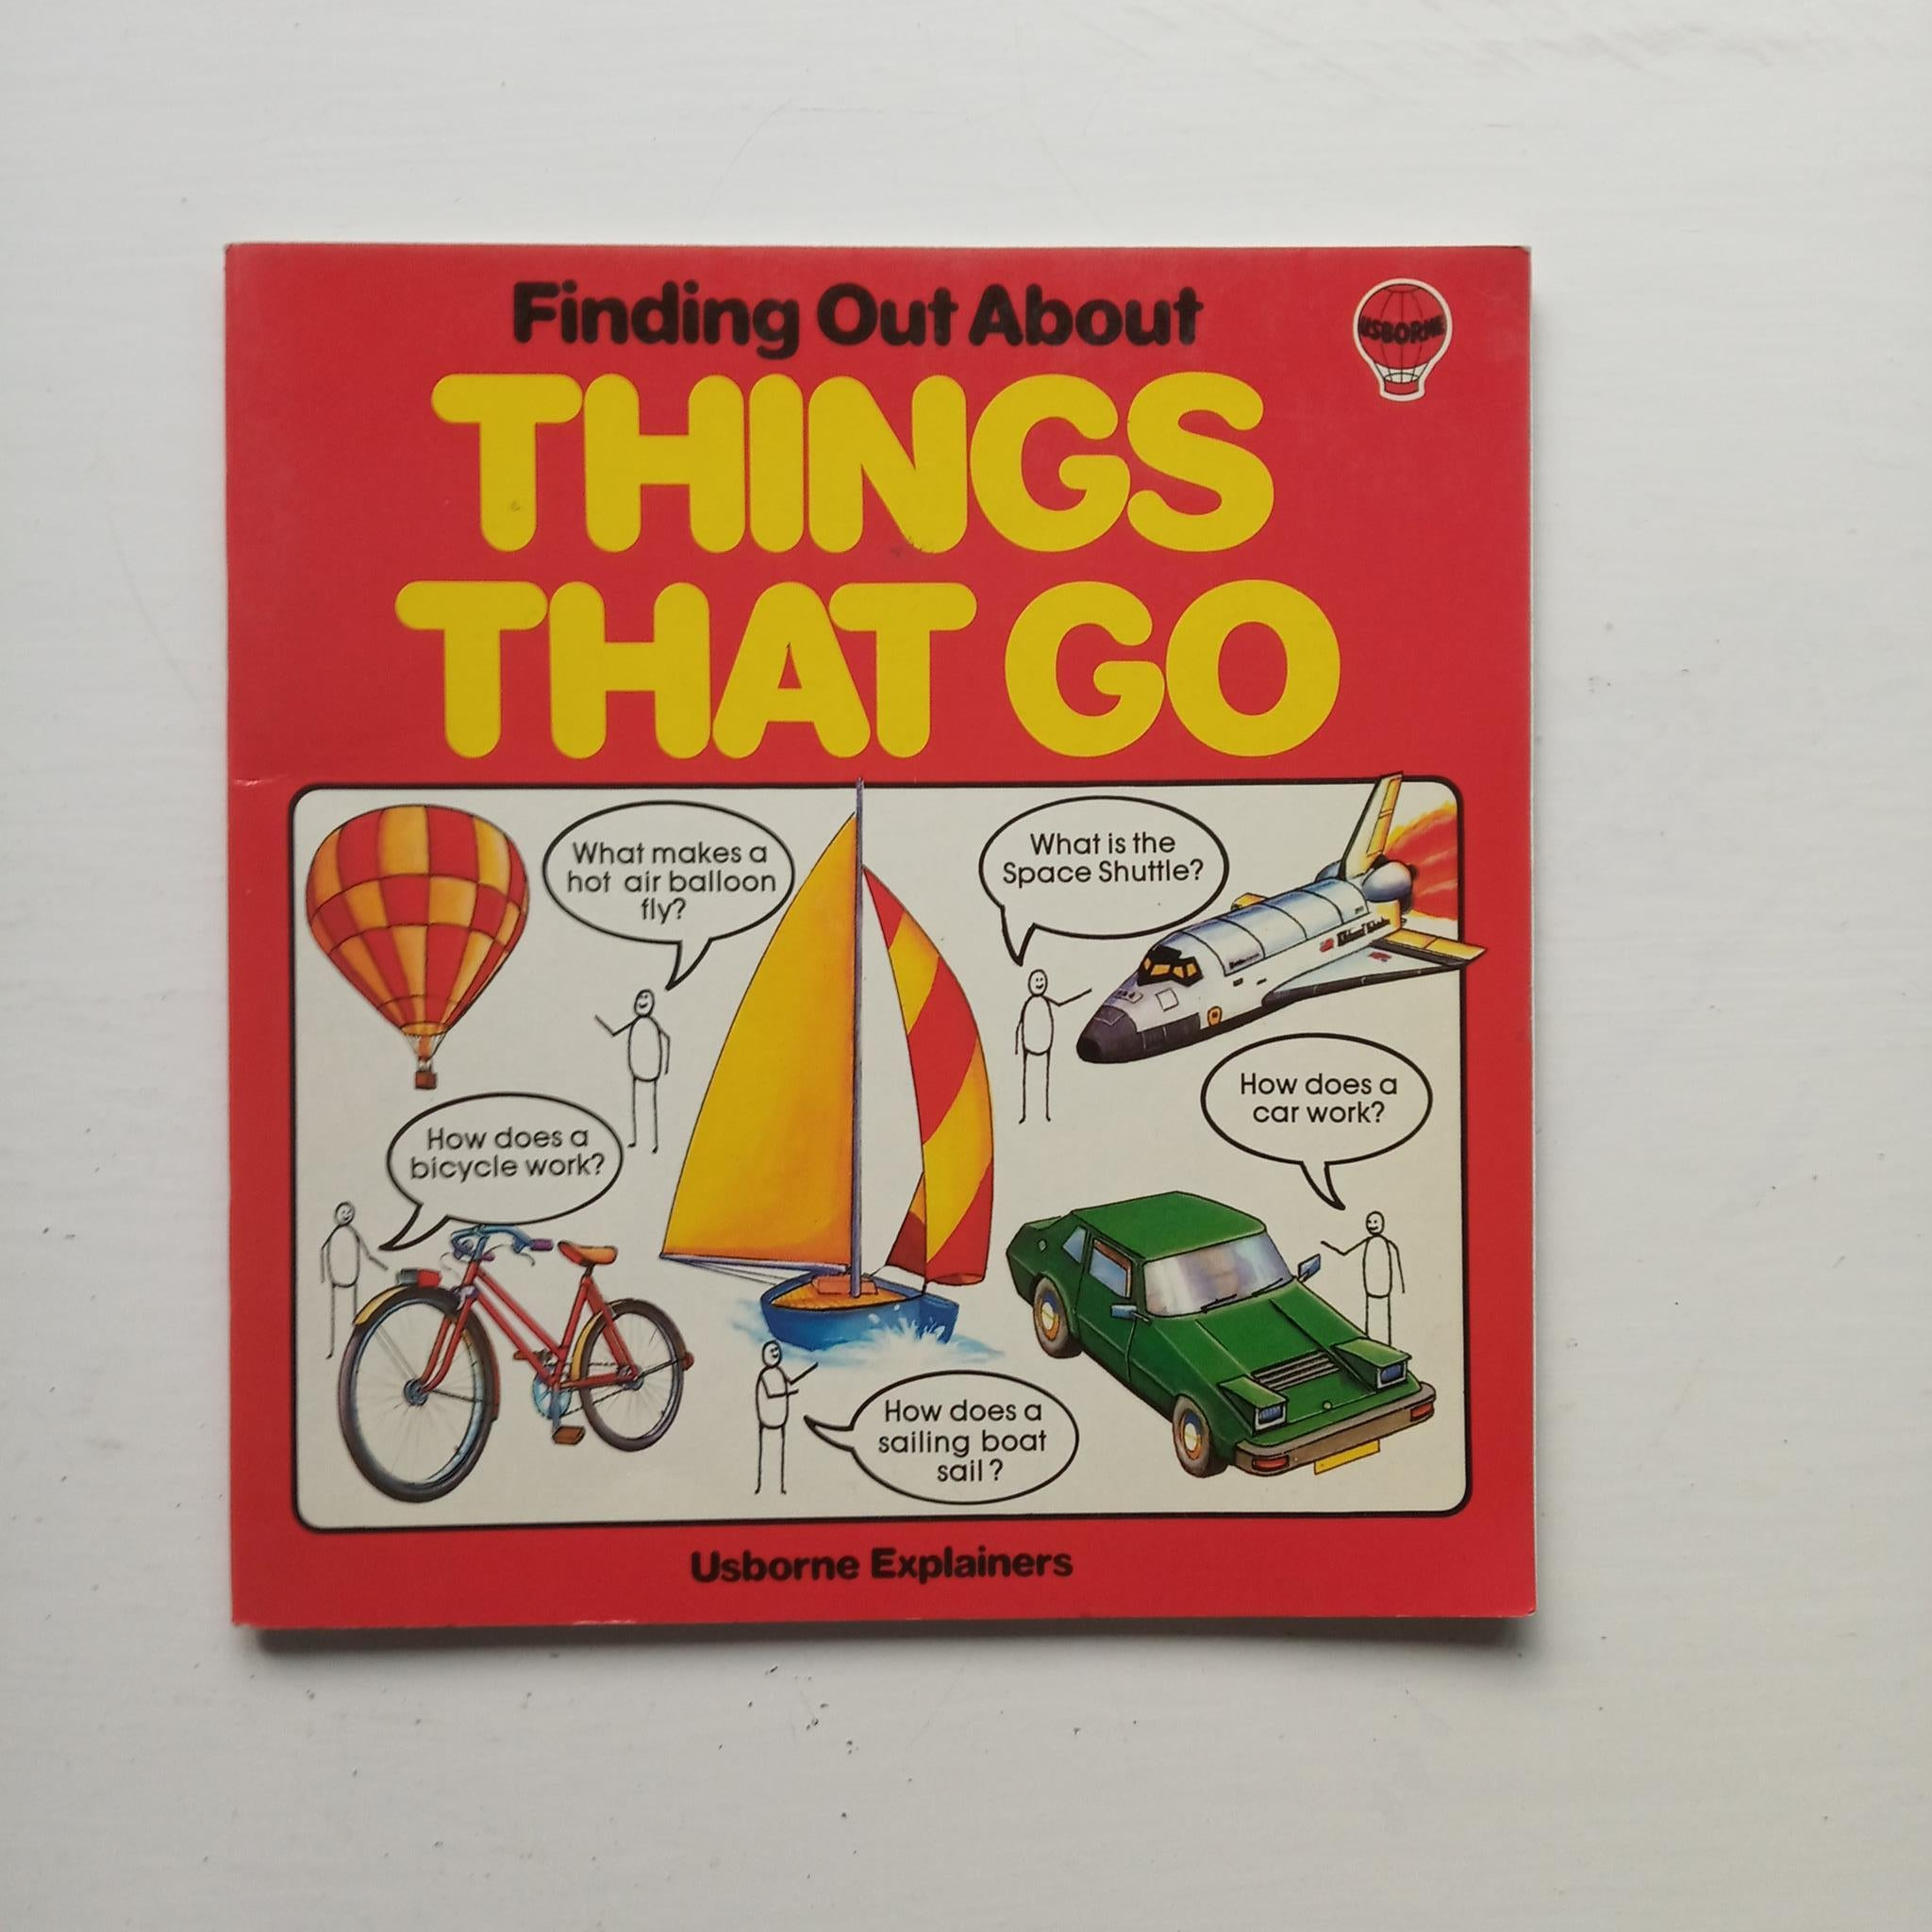 Finding Out about Things that Go by Eliot Humberstone